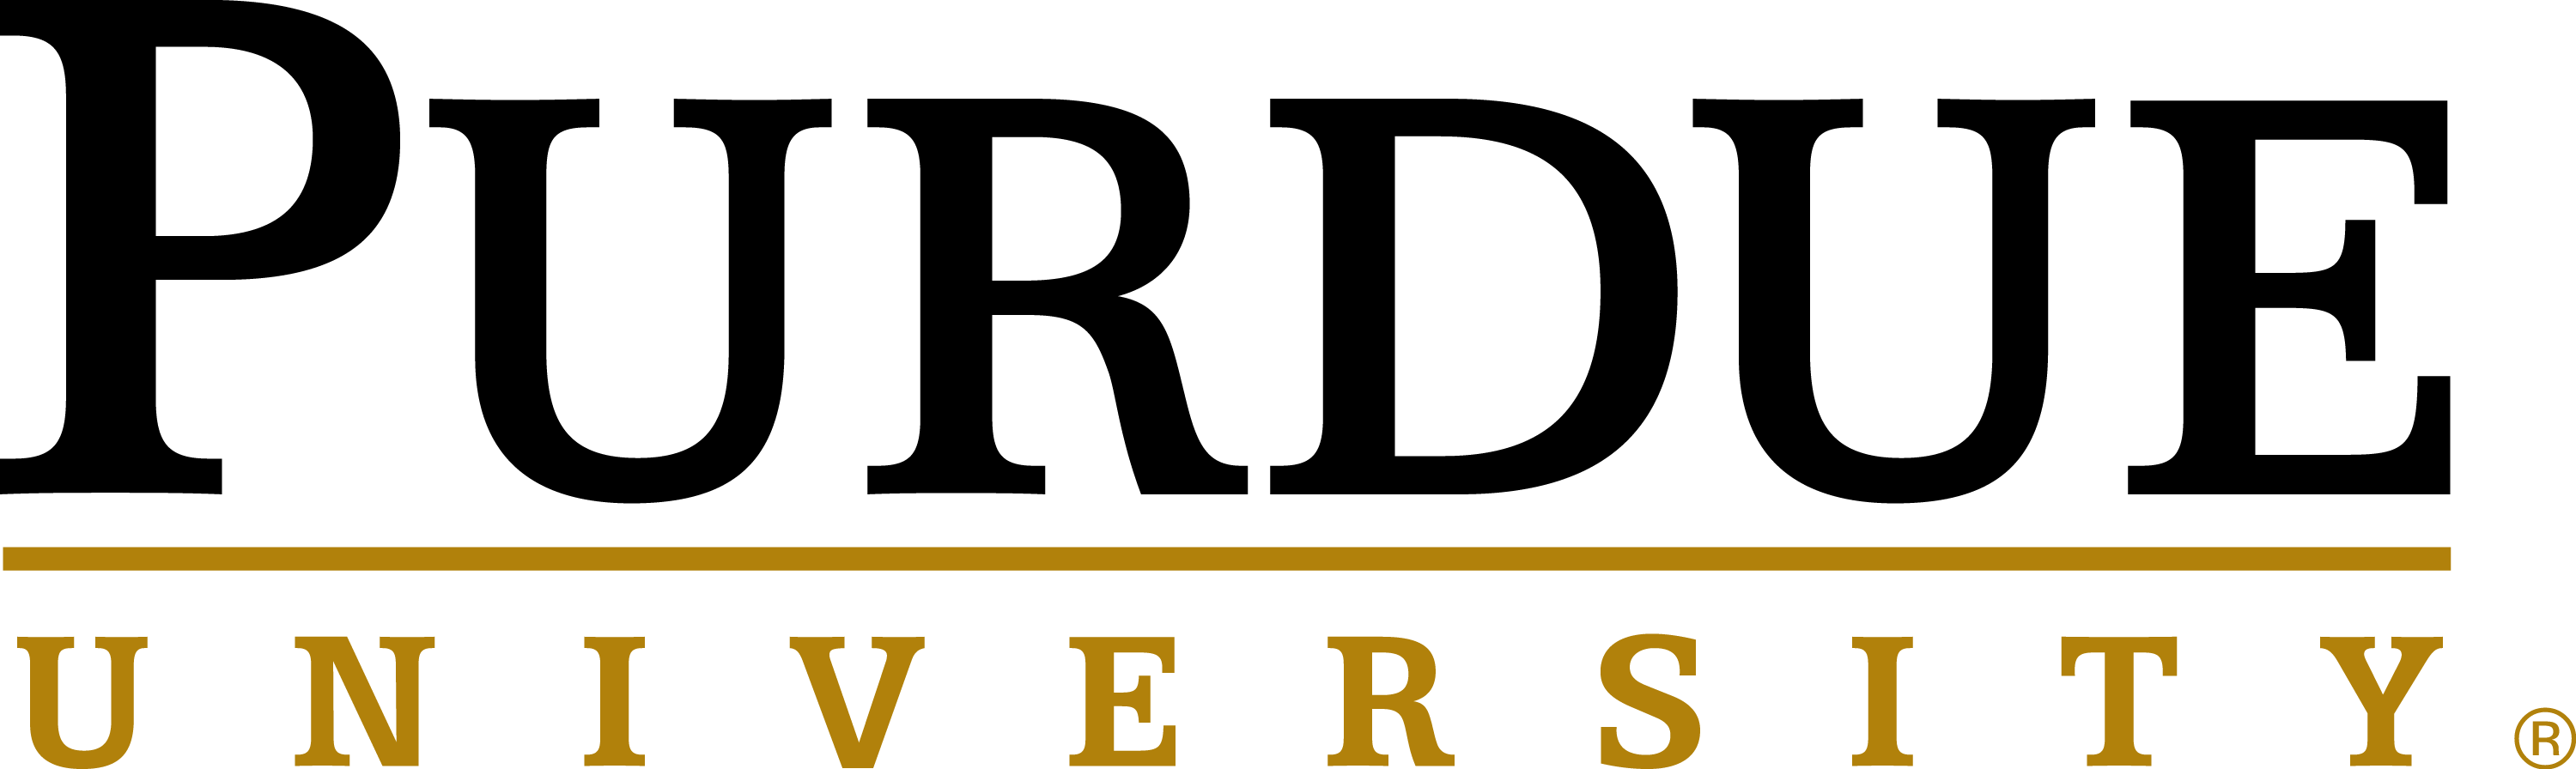 https://www.nawboindy.org/wp-content/uploads/Purdue-Sig-Black-Gold-rgb-1.png